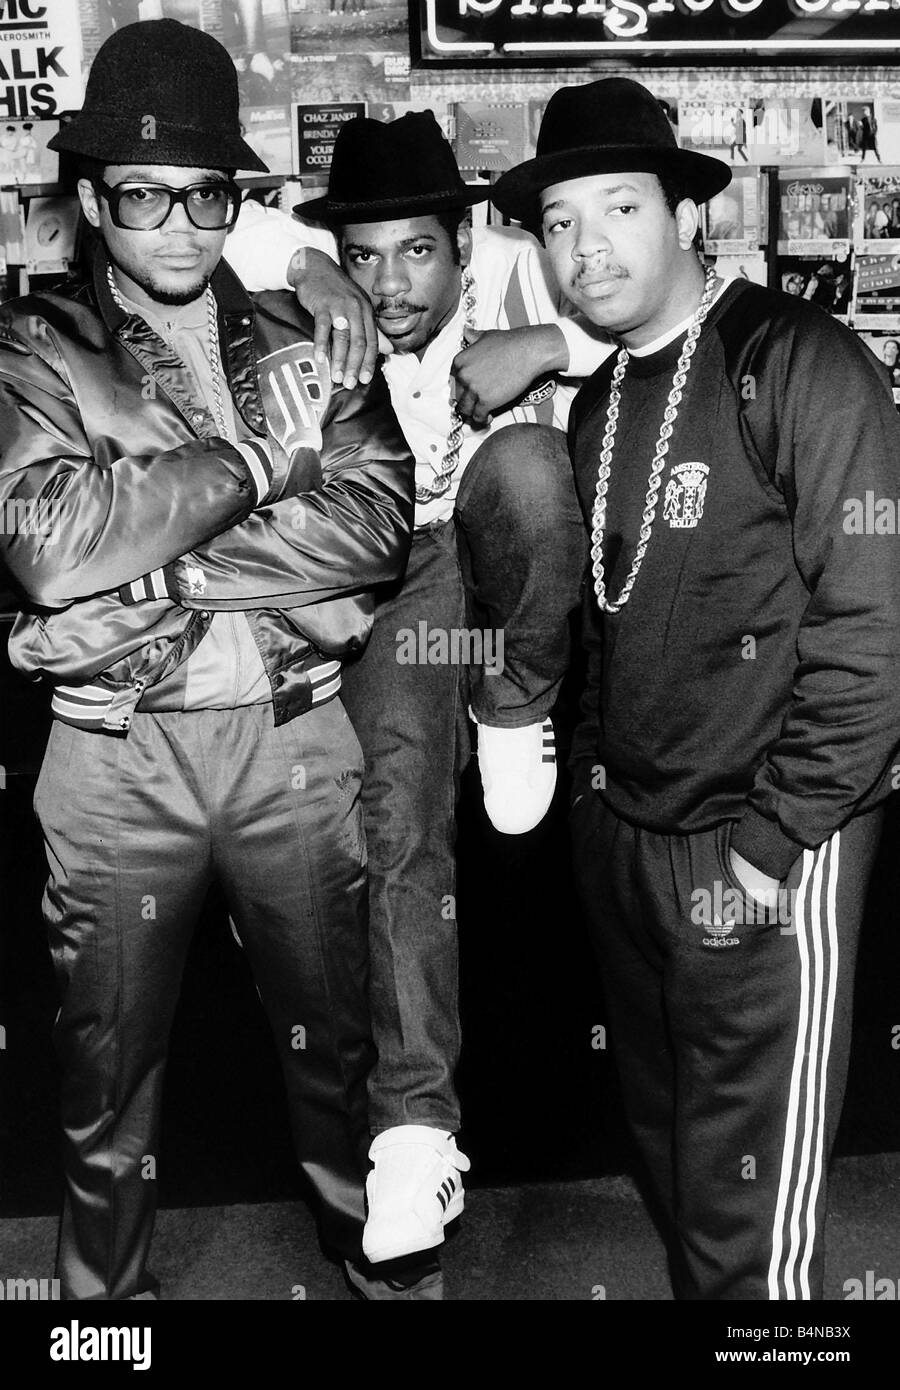 Run DMC American pop group rap 1986 - Stock Image